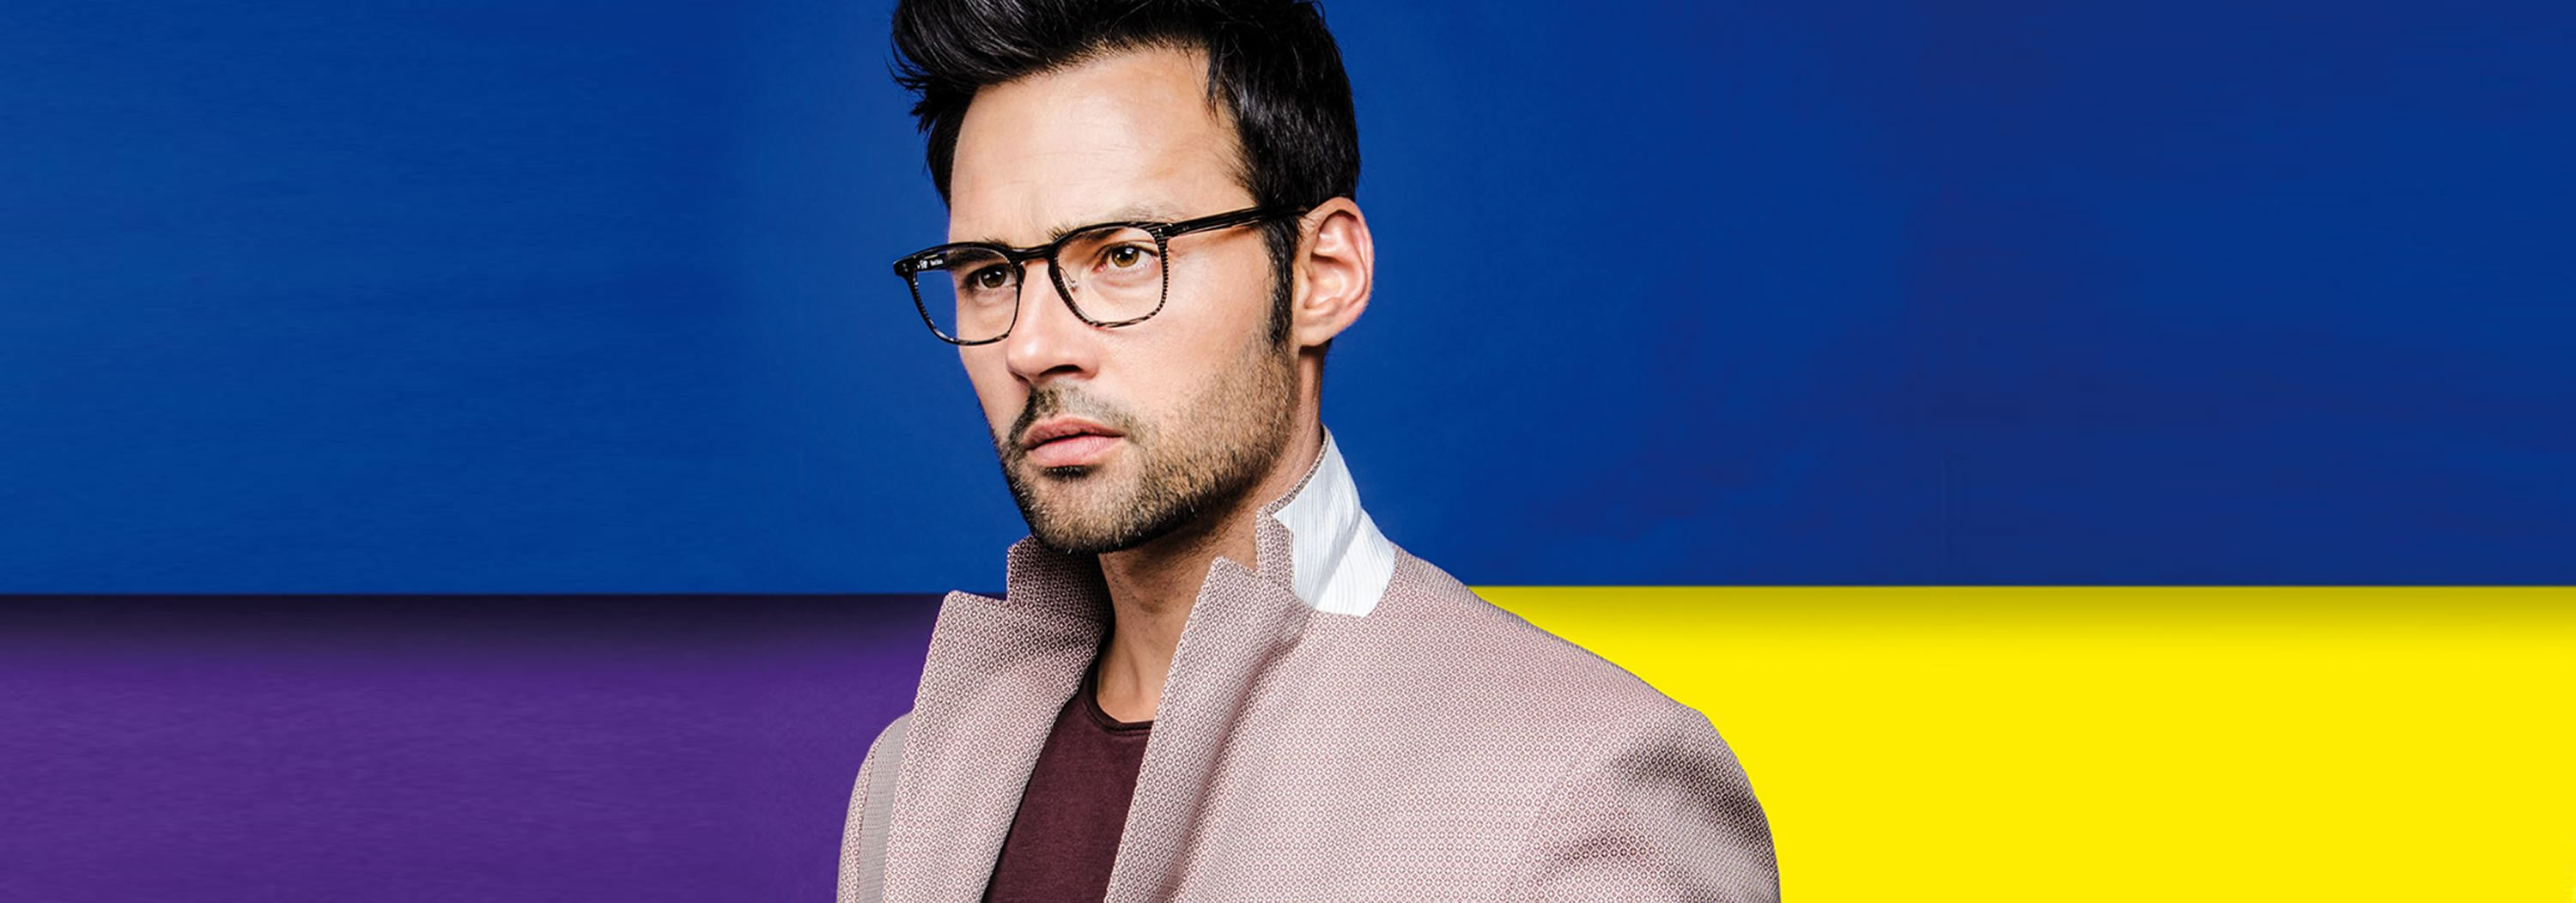 7234969ee3 designer frames from Tom Ford - Northern Ireland Optician